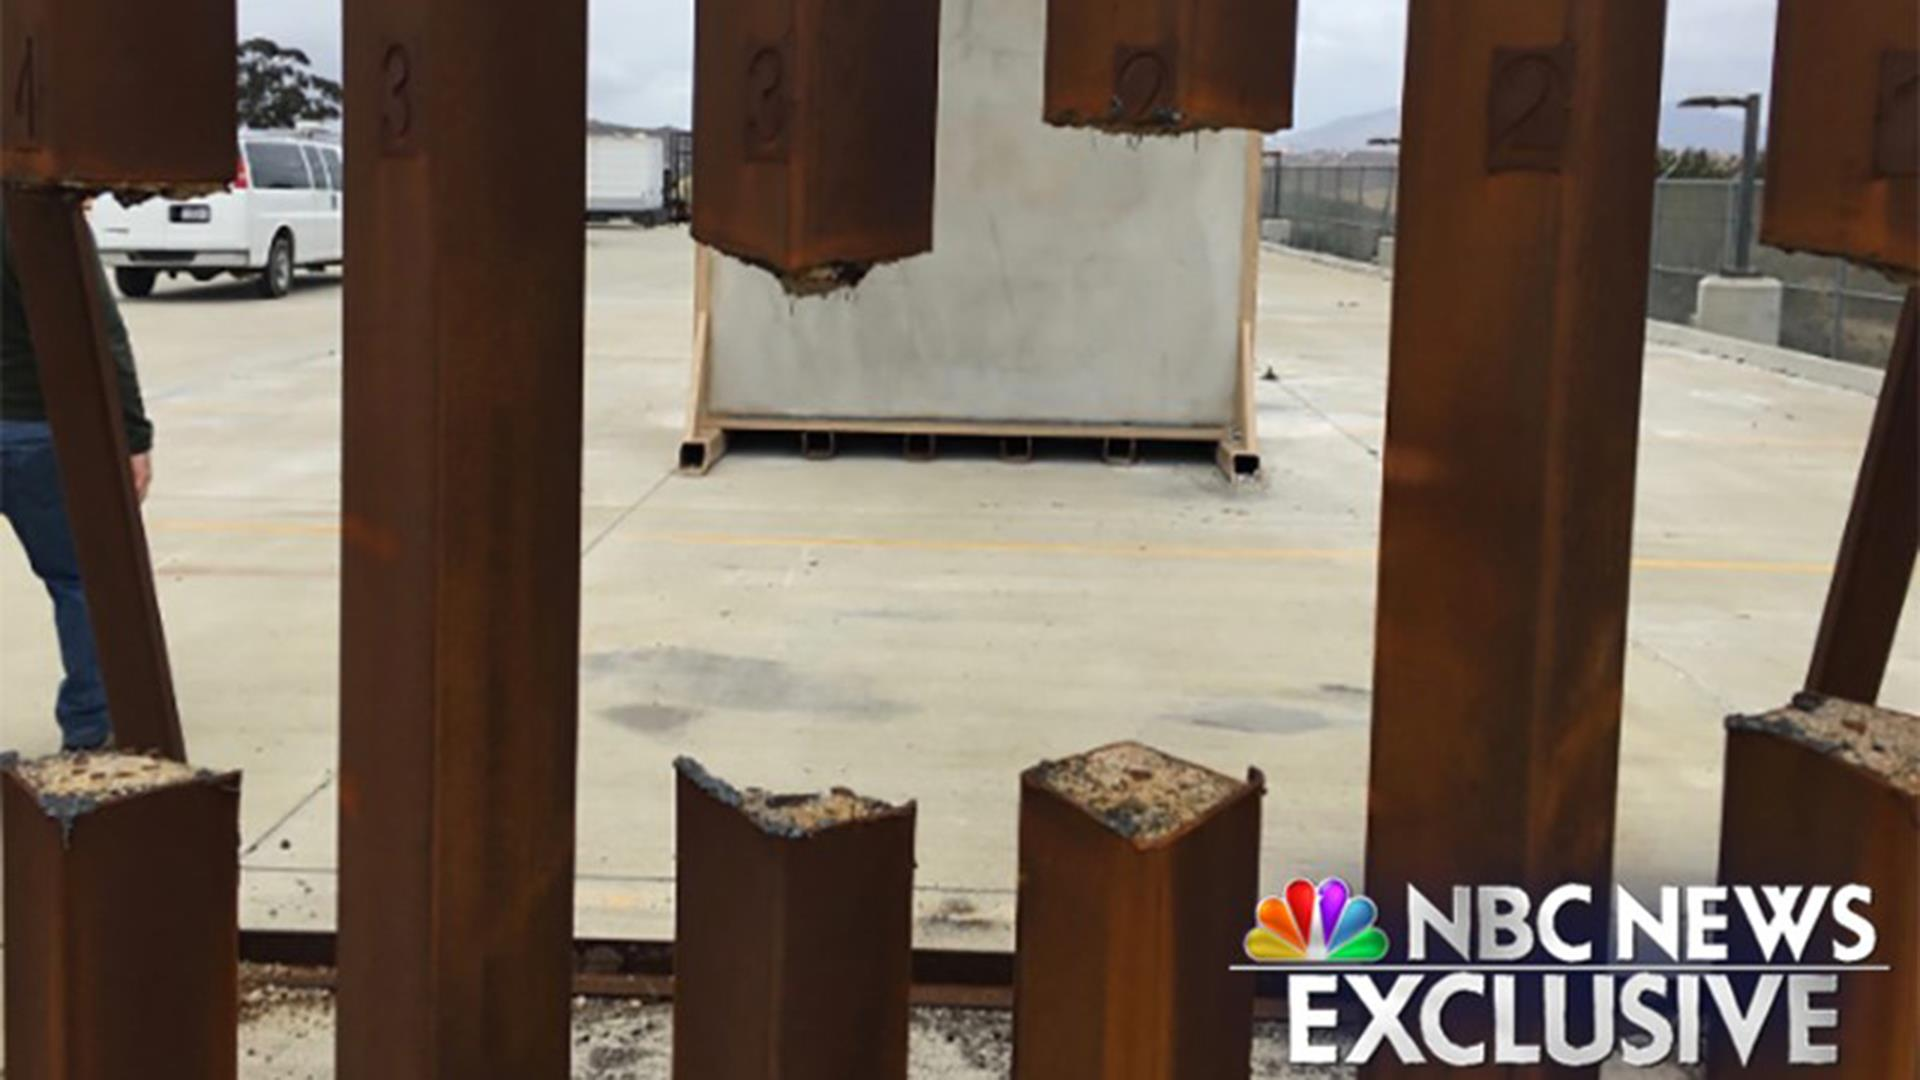 Slat Walls Dhs Testing Of Steel Slat Border Wall Prototype Proved It Could Be Cut Through